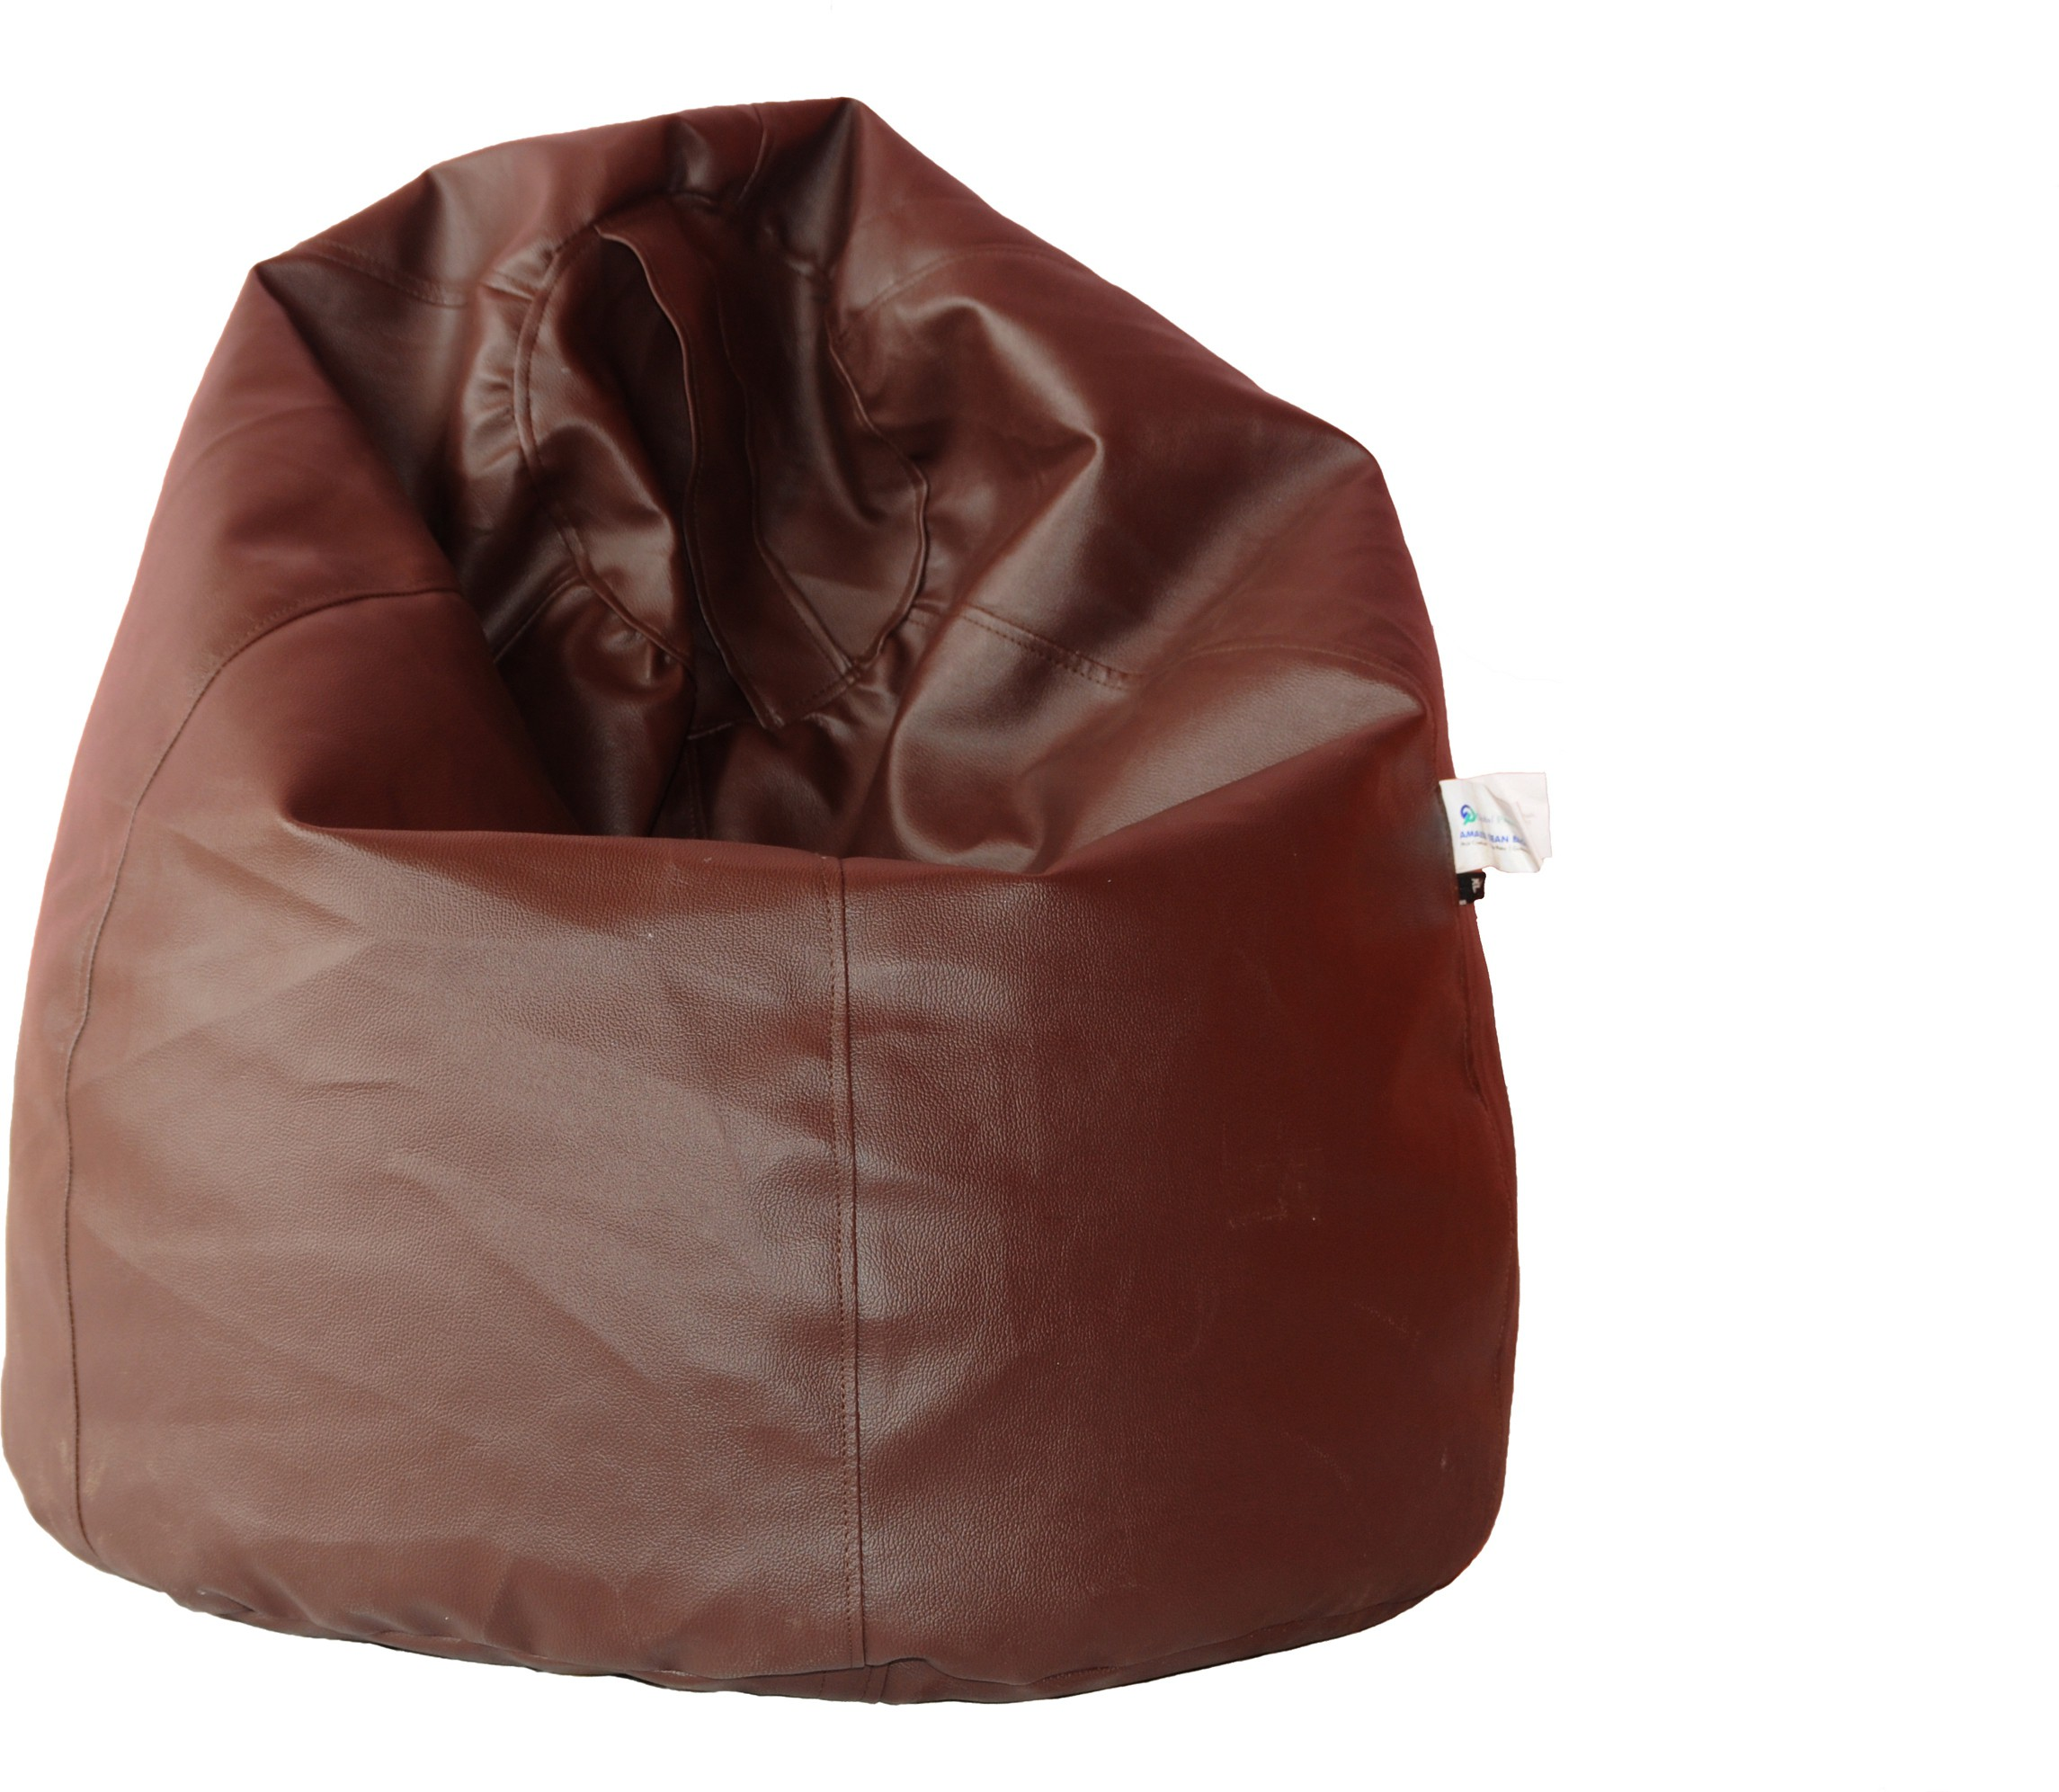 View Amaze XL Bean Bag Cover(Brown) Furniture (Amaze)